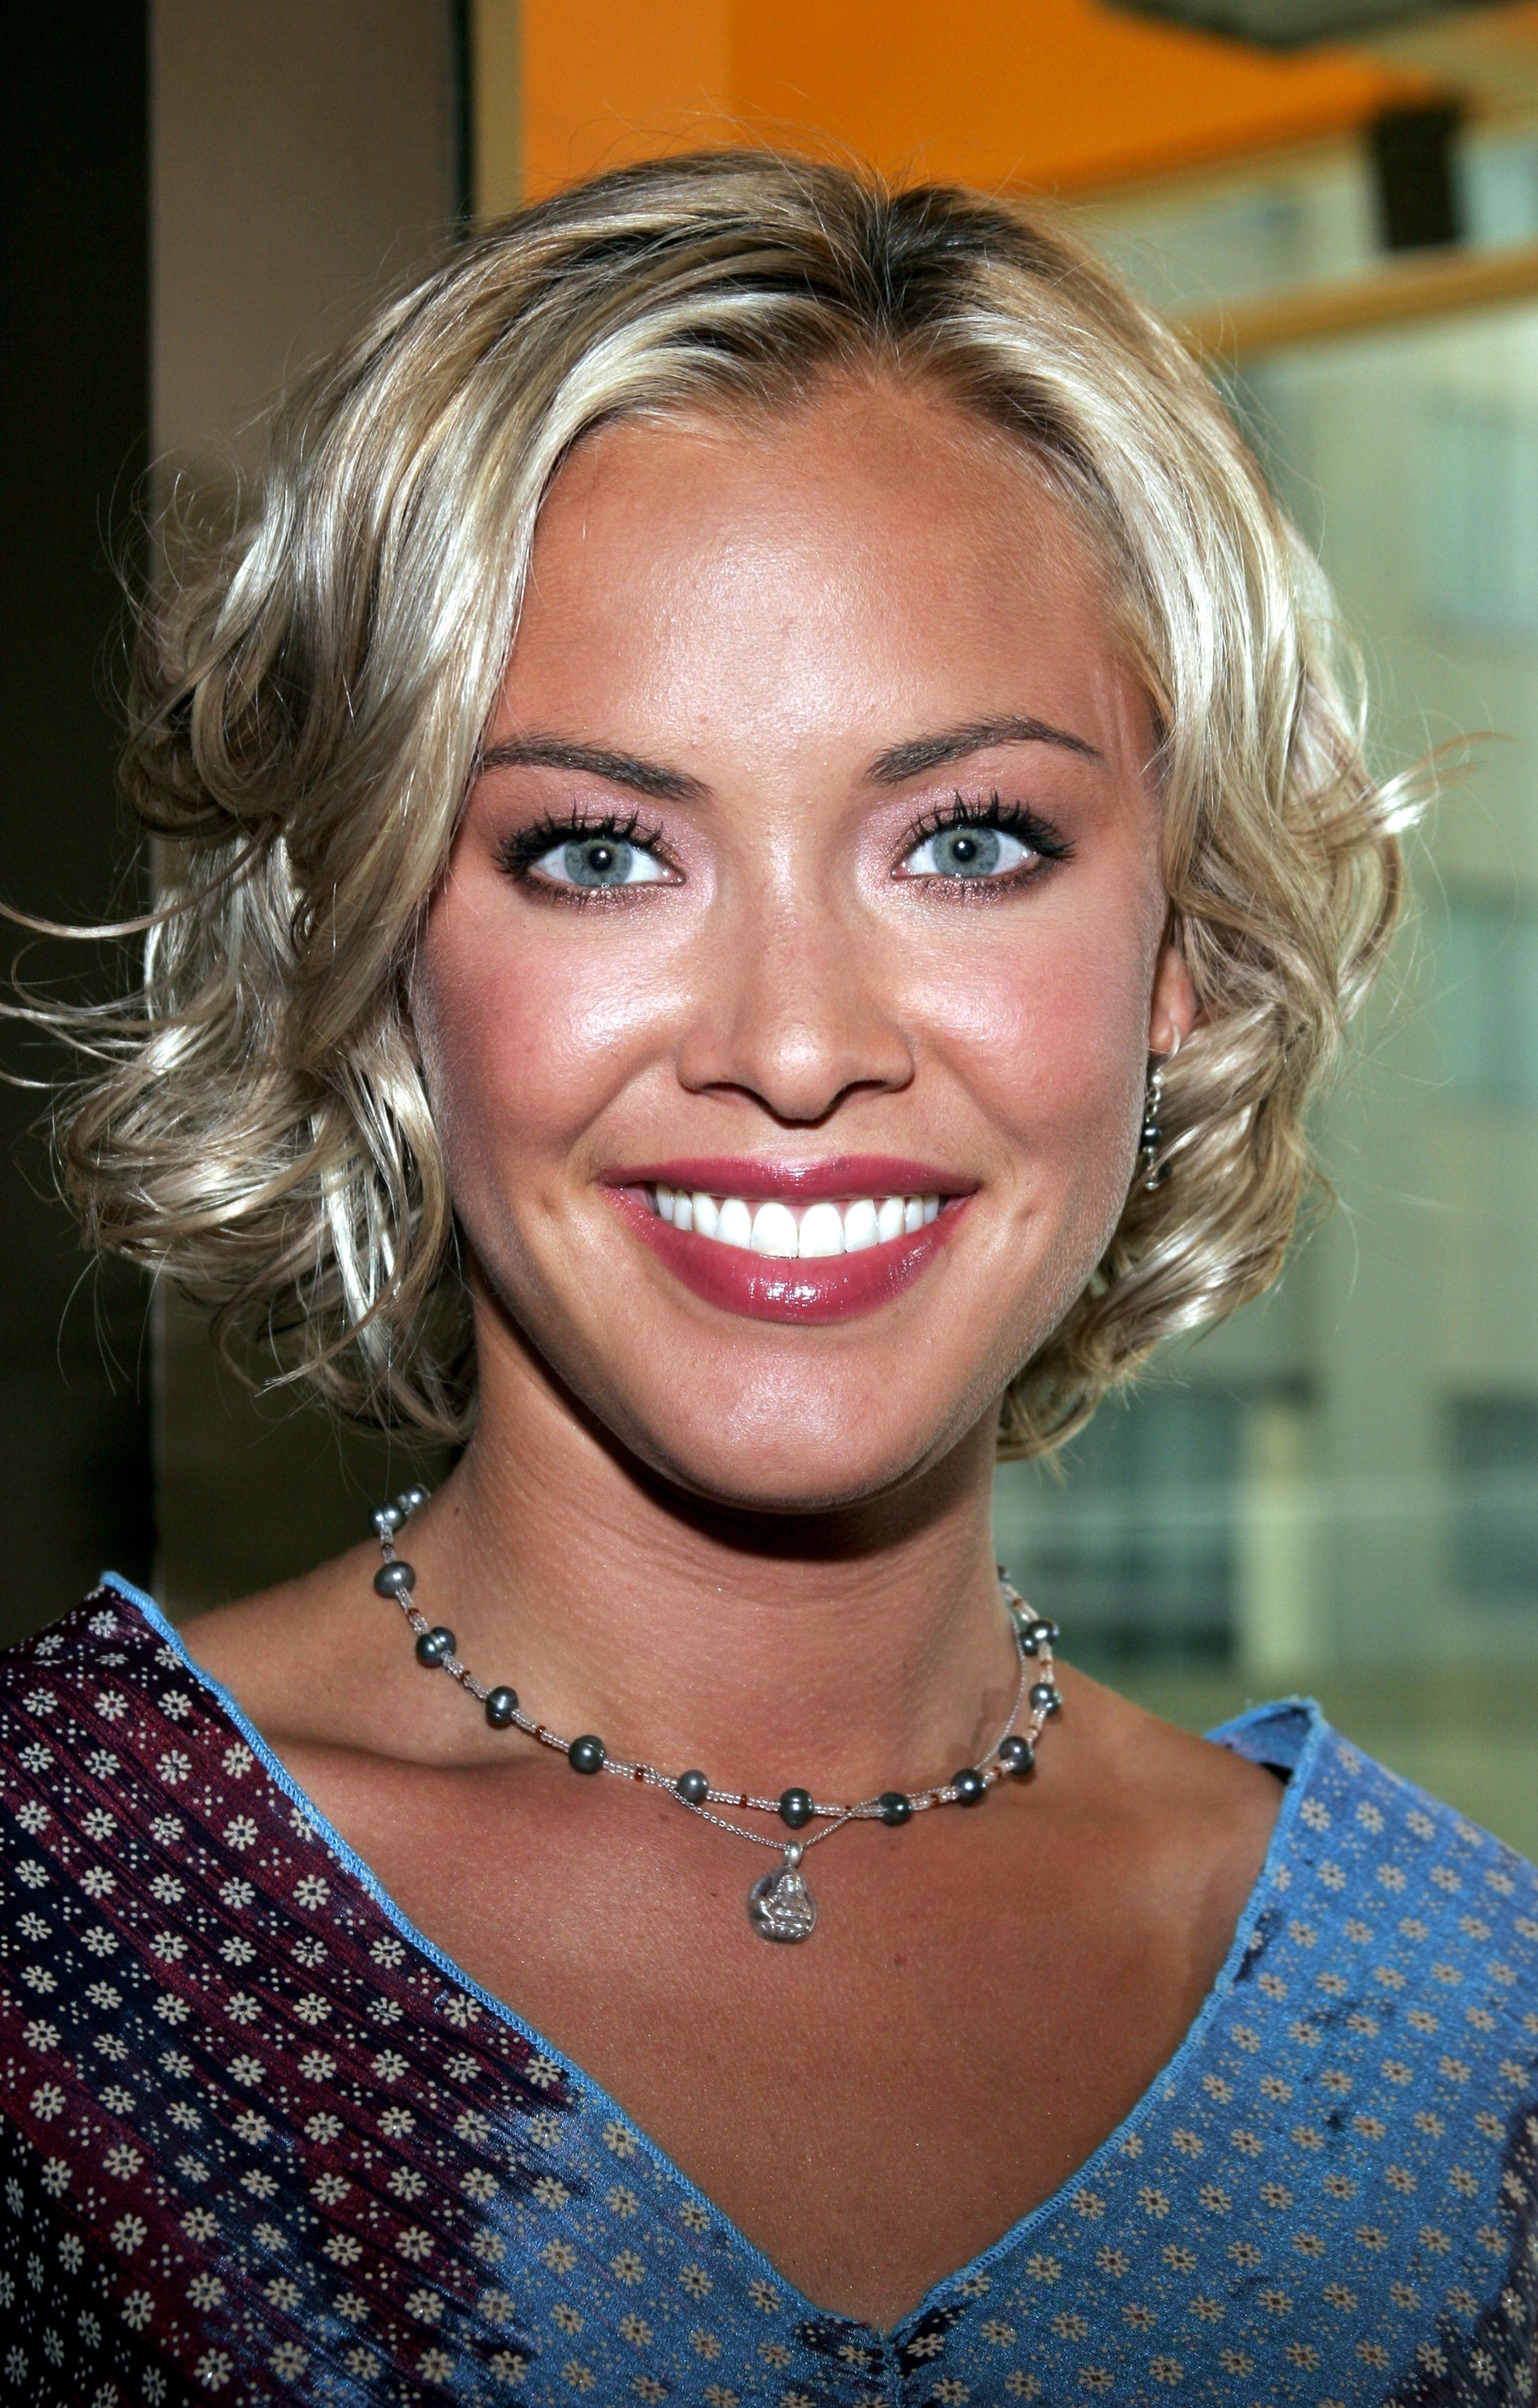 kristanna loken eric andre showkristanna loken tx, kristanna loken black rose, kristanna loken fan, kristanna loken and jonathan, kristanna loken eric andre show, kristanna loken in boy meets world, kristanna loken kimdir, kristanna loken instagram, kristanna loken 2016, kristanna loken фильмы, kristanna loken twitter, kristanna loken hd wallpapers, kristanna loken facebook, kristanna loken brunilde, kristanna loken terminatrix, kristanna loken net worth, kristanna loken fansite, kristanna loken death